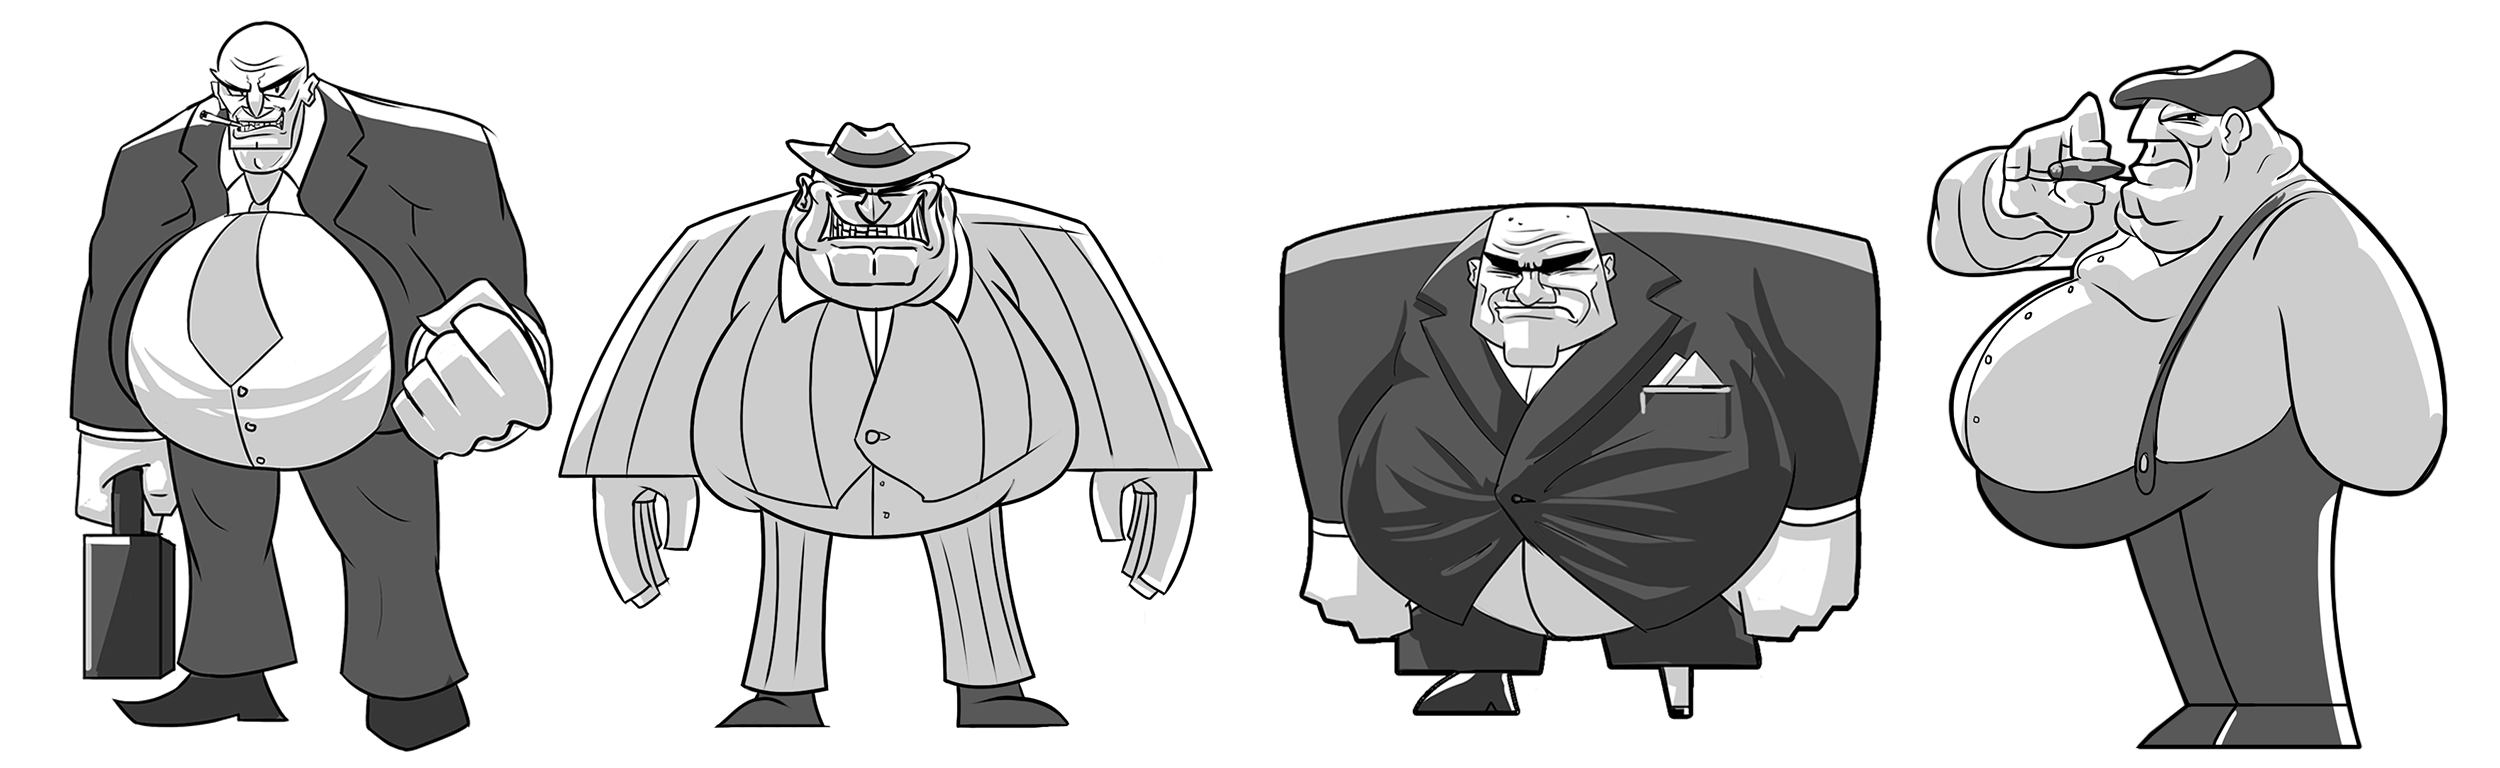 """""""Slippery Pete"""" Character Explorations"""